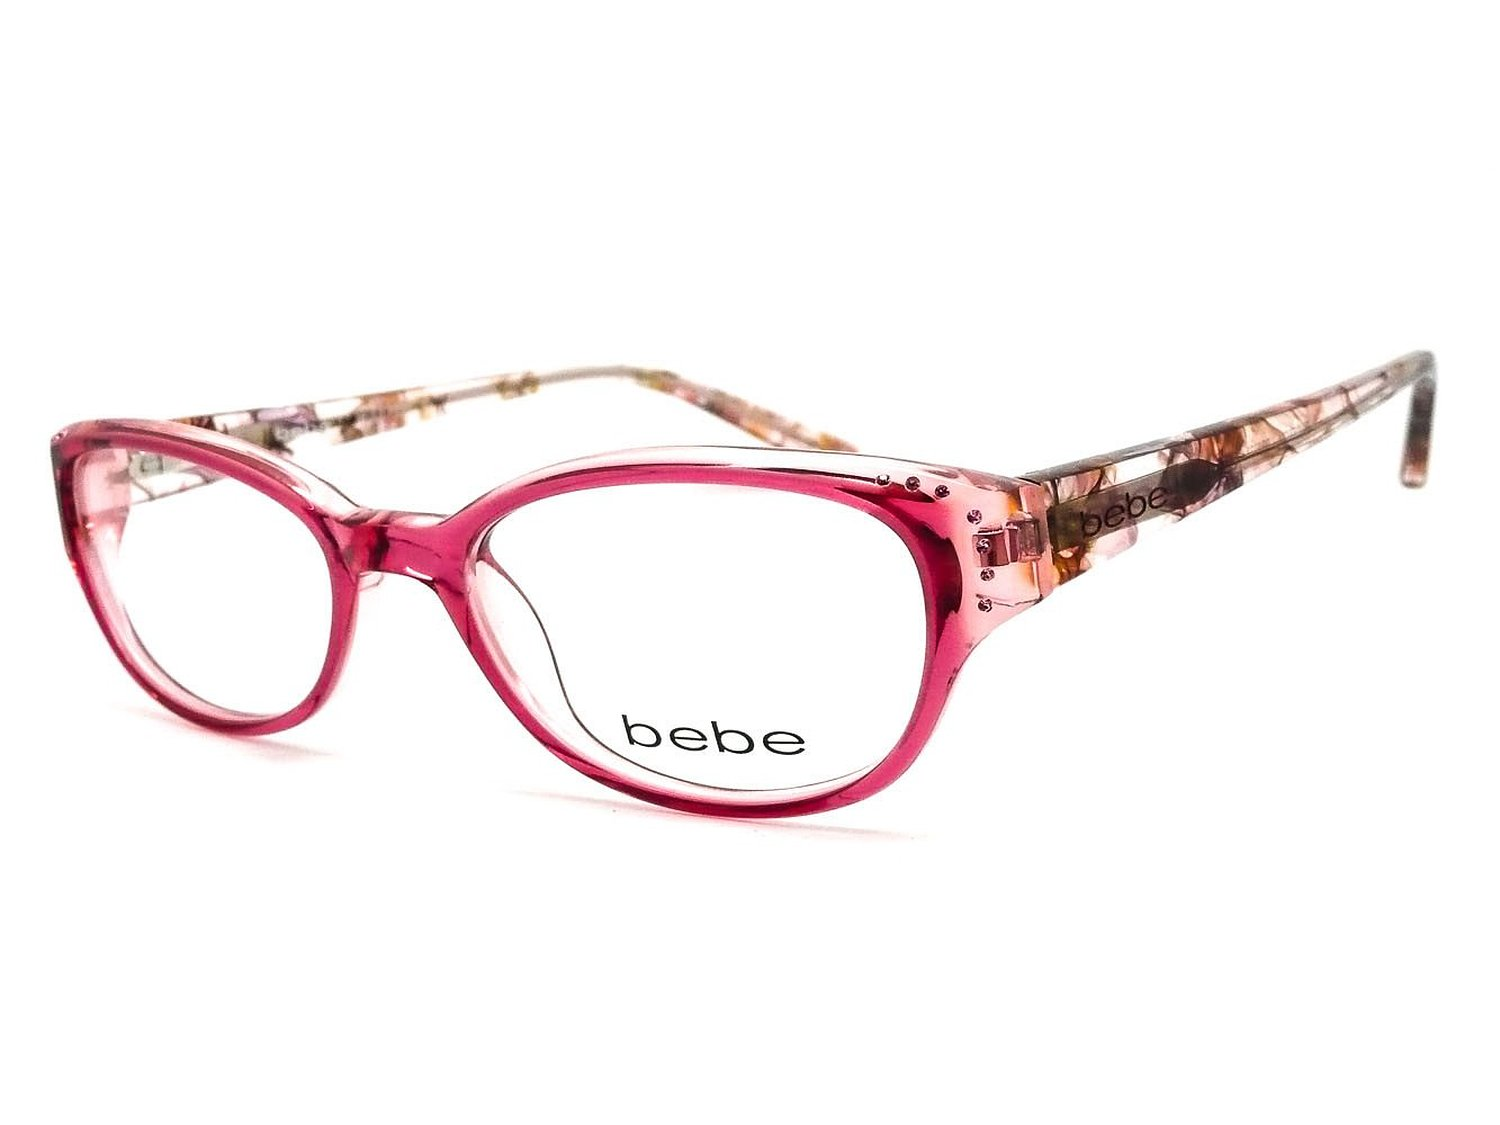 Bebe rose eyeglass frames